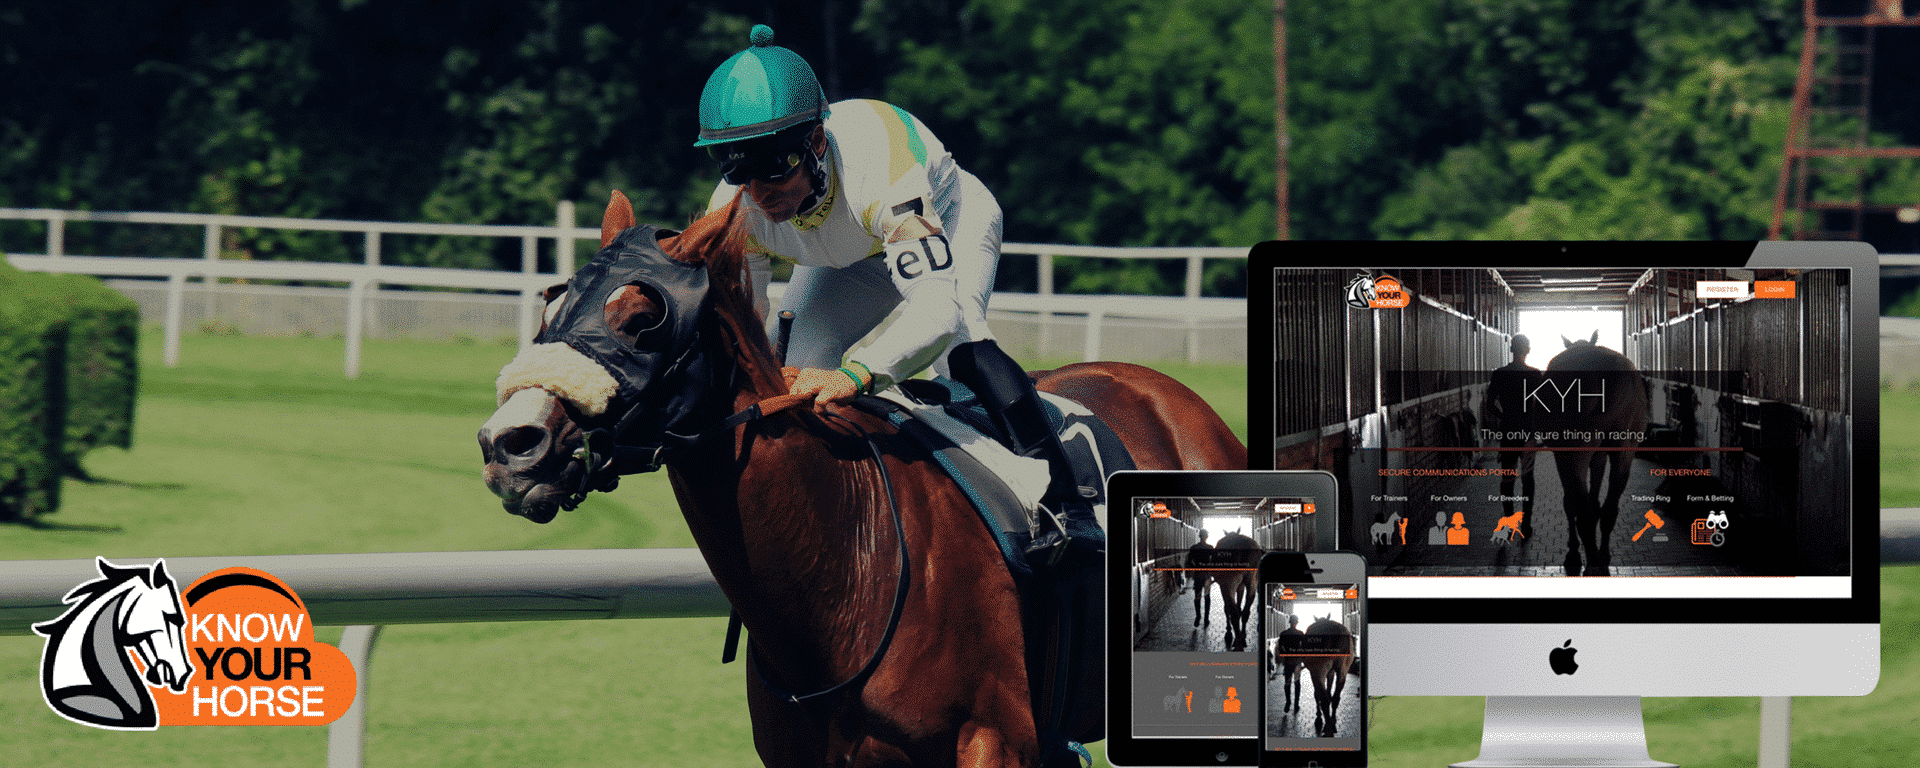 Know Your Horse Web Application